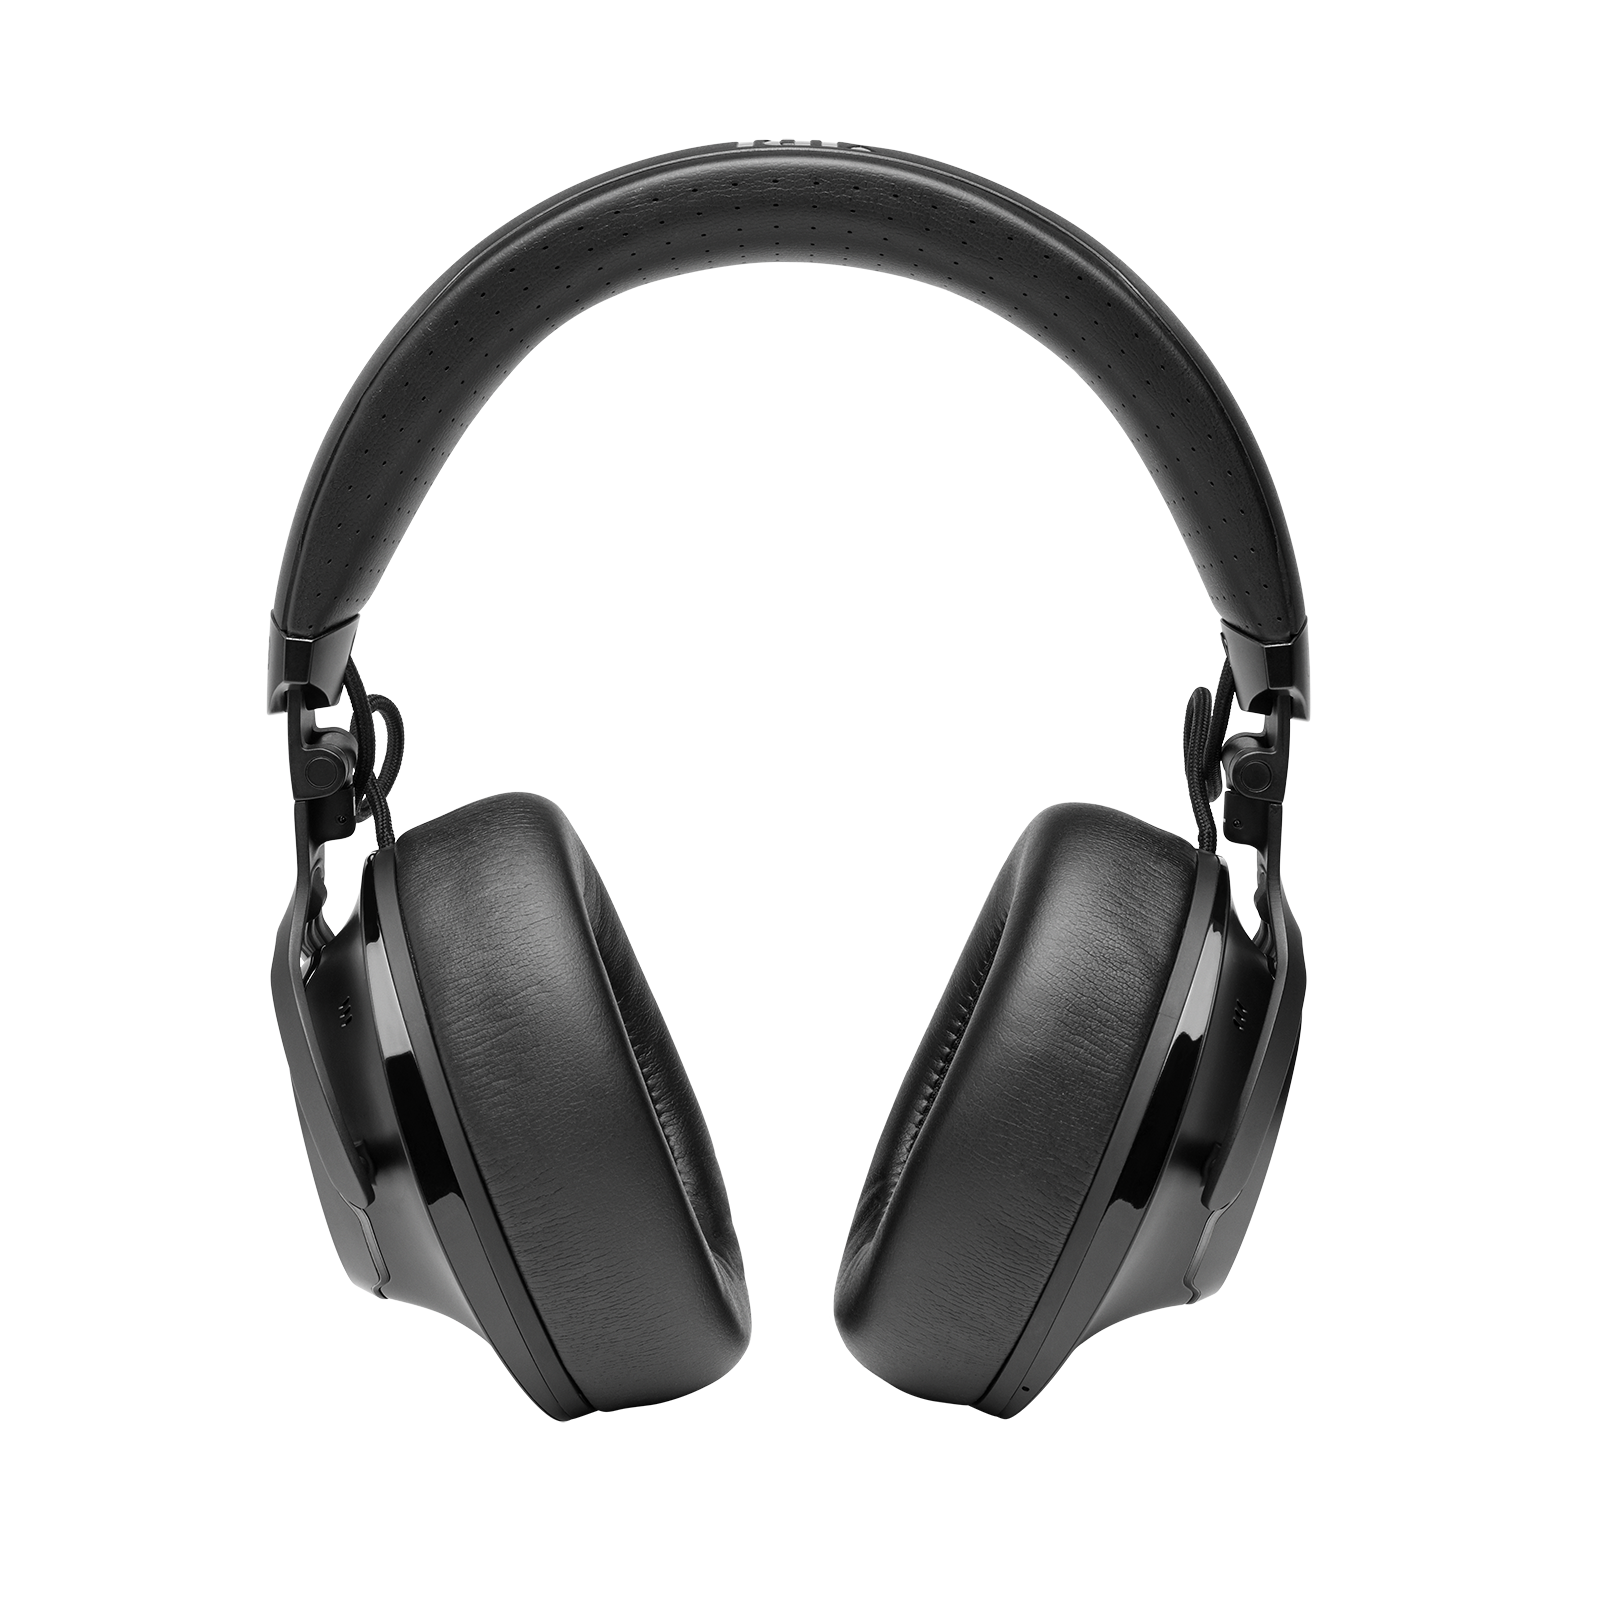 JBL CLUB 950NC - Black - Wireless over-ear noise cancelling headphones - Front